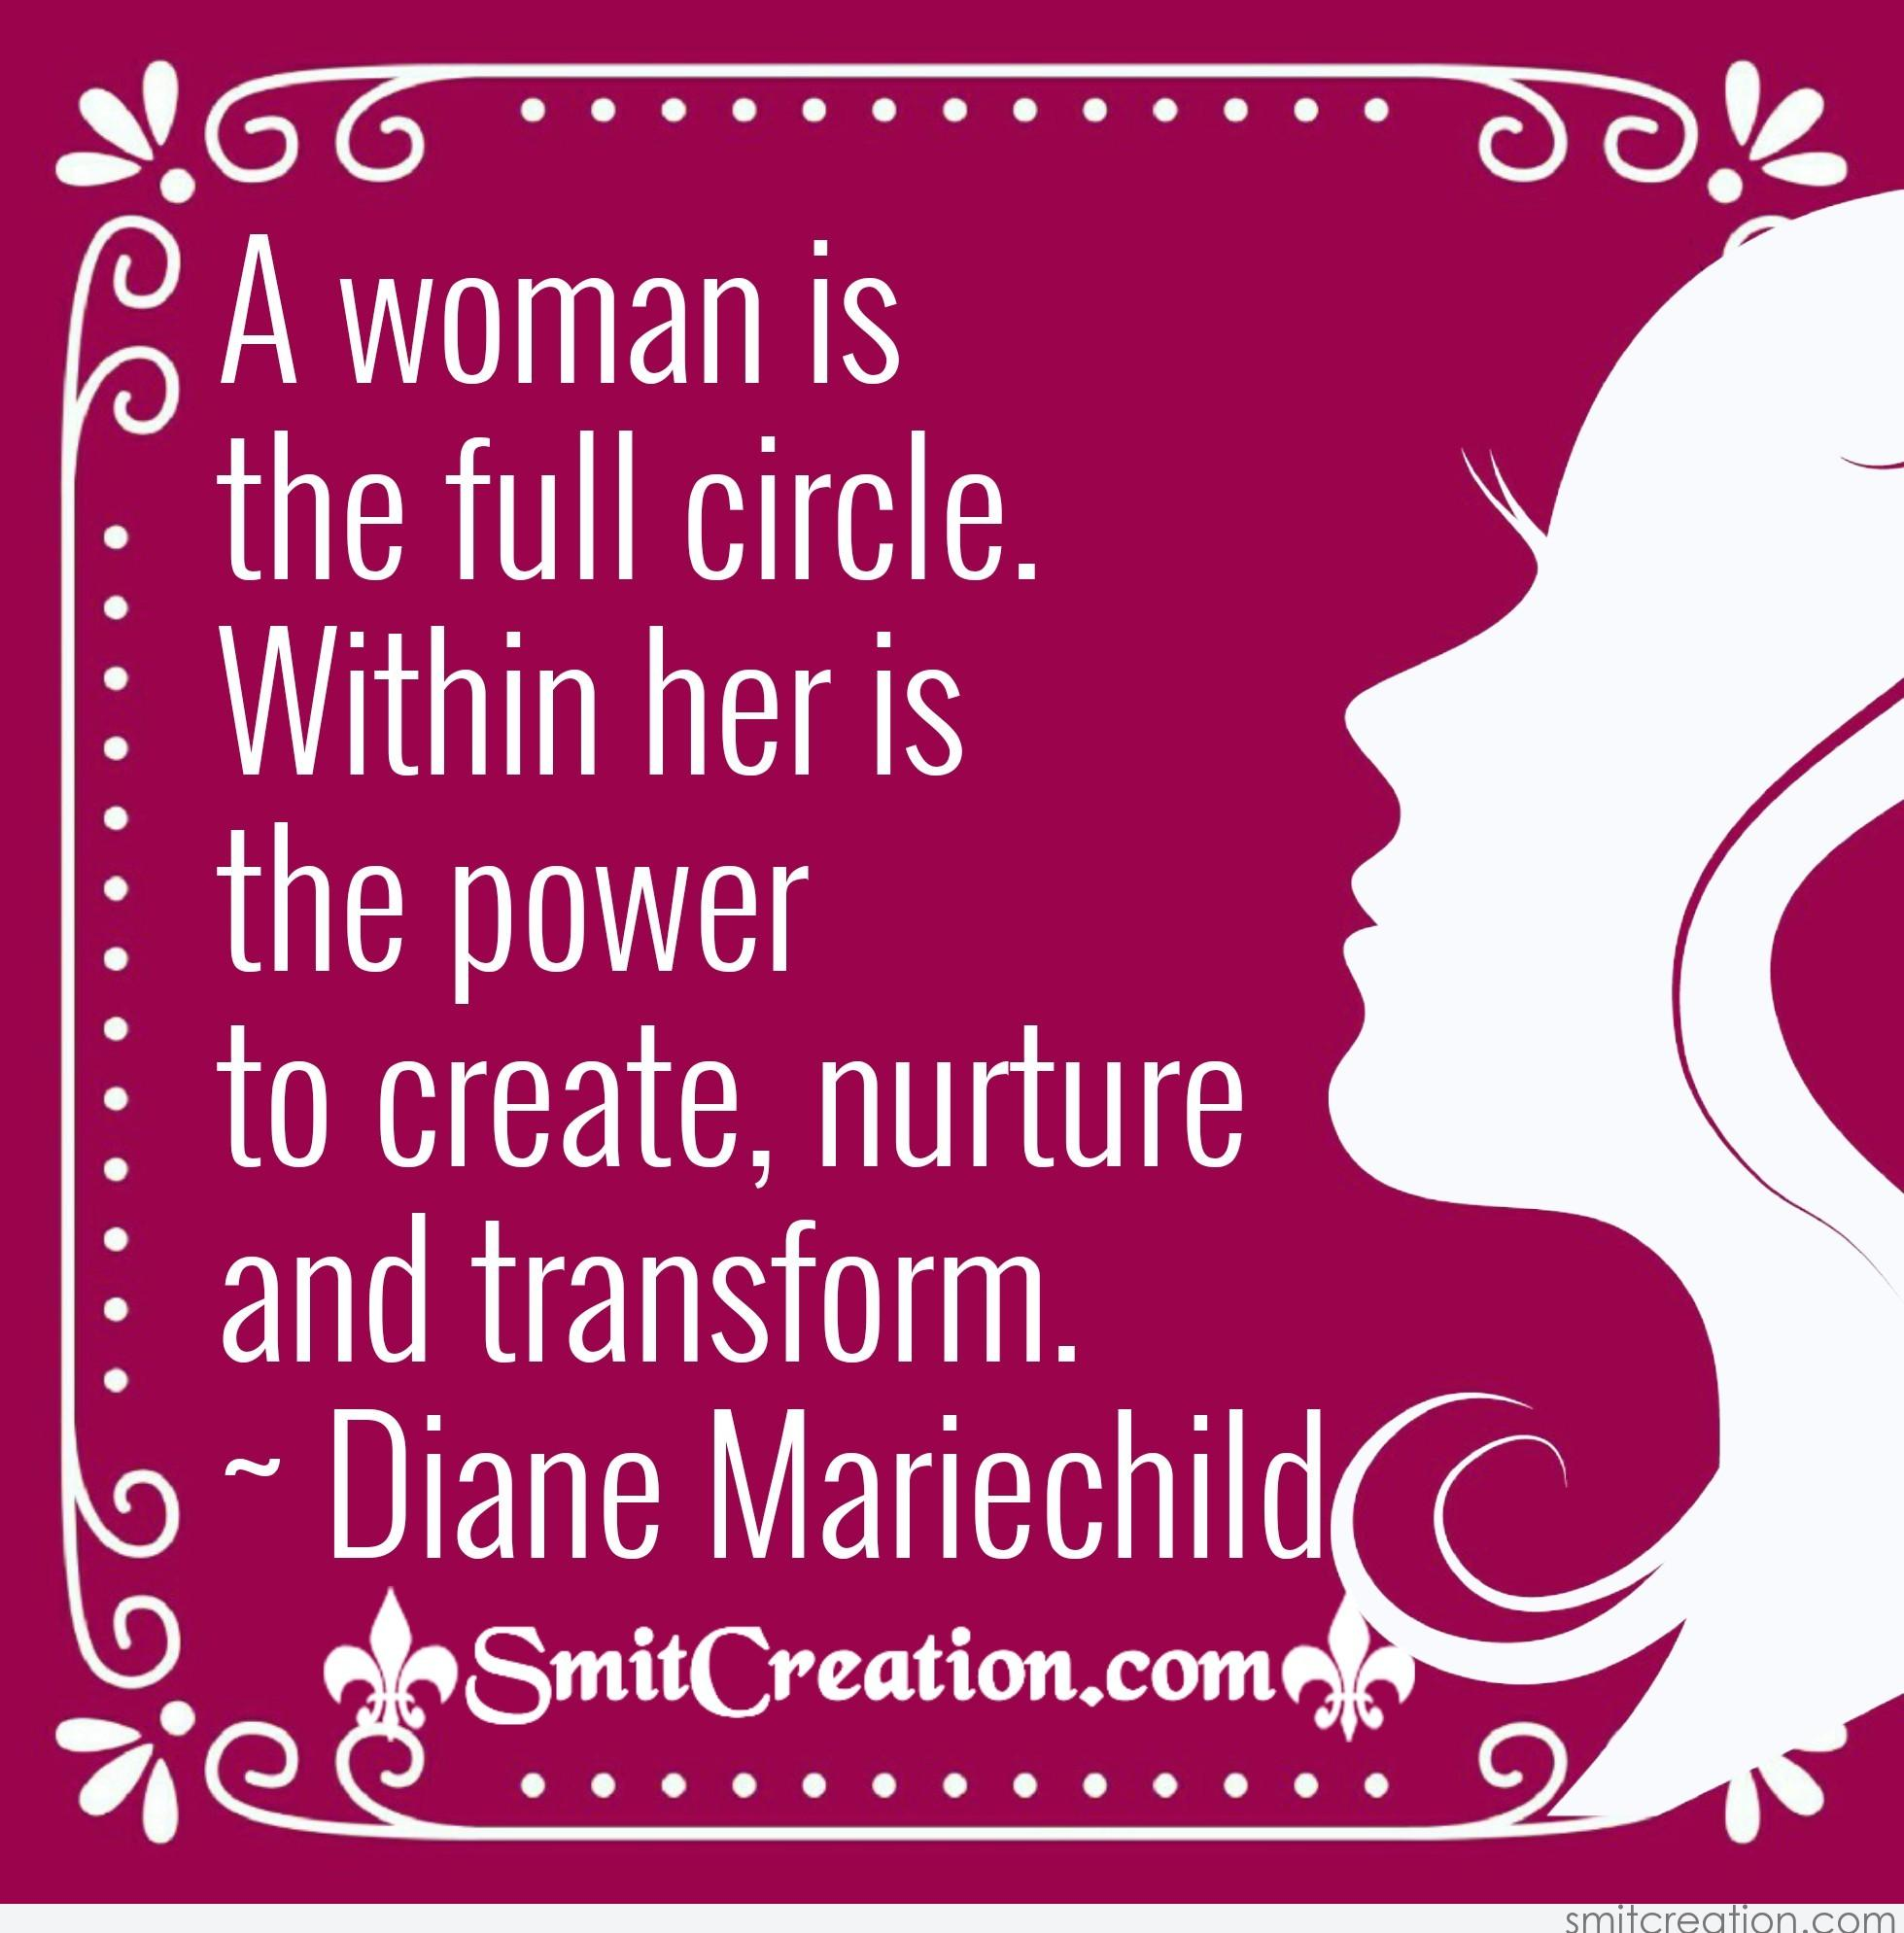 Proud To Be A Woman Quotes Pictures And Graphics Smitcreationcom